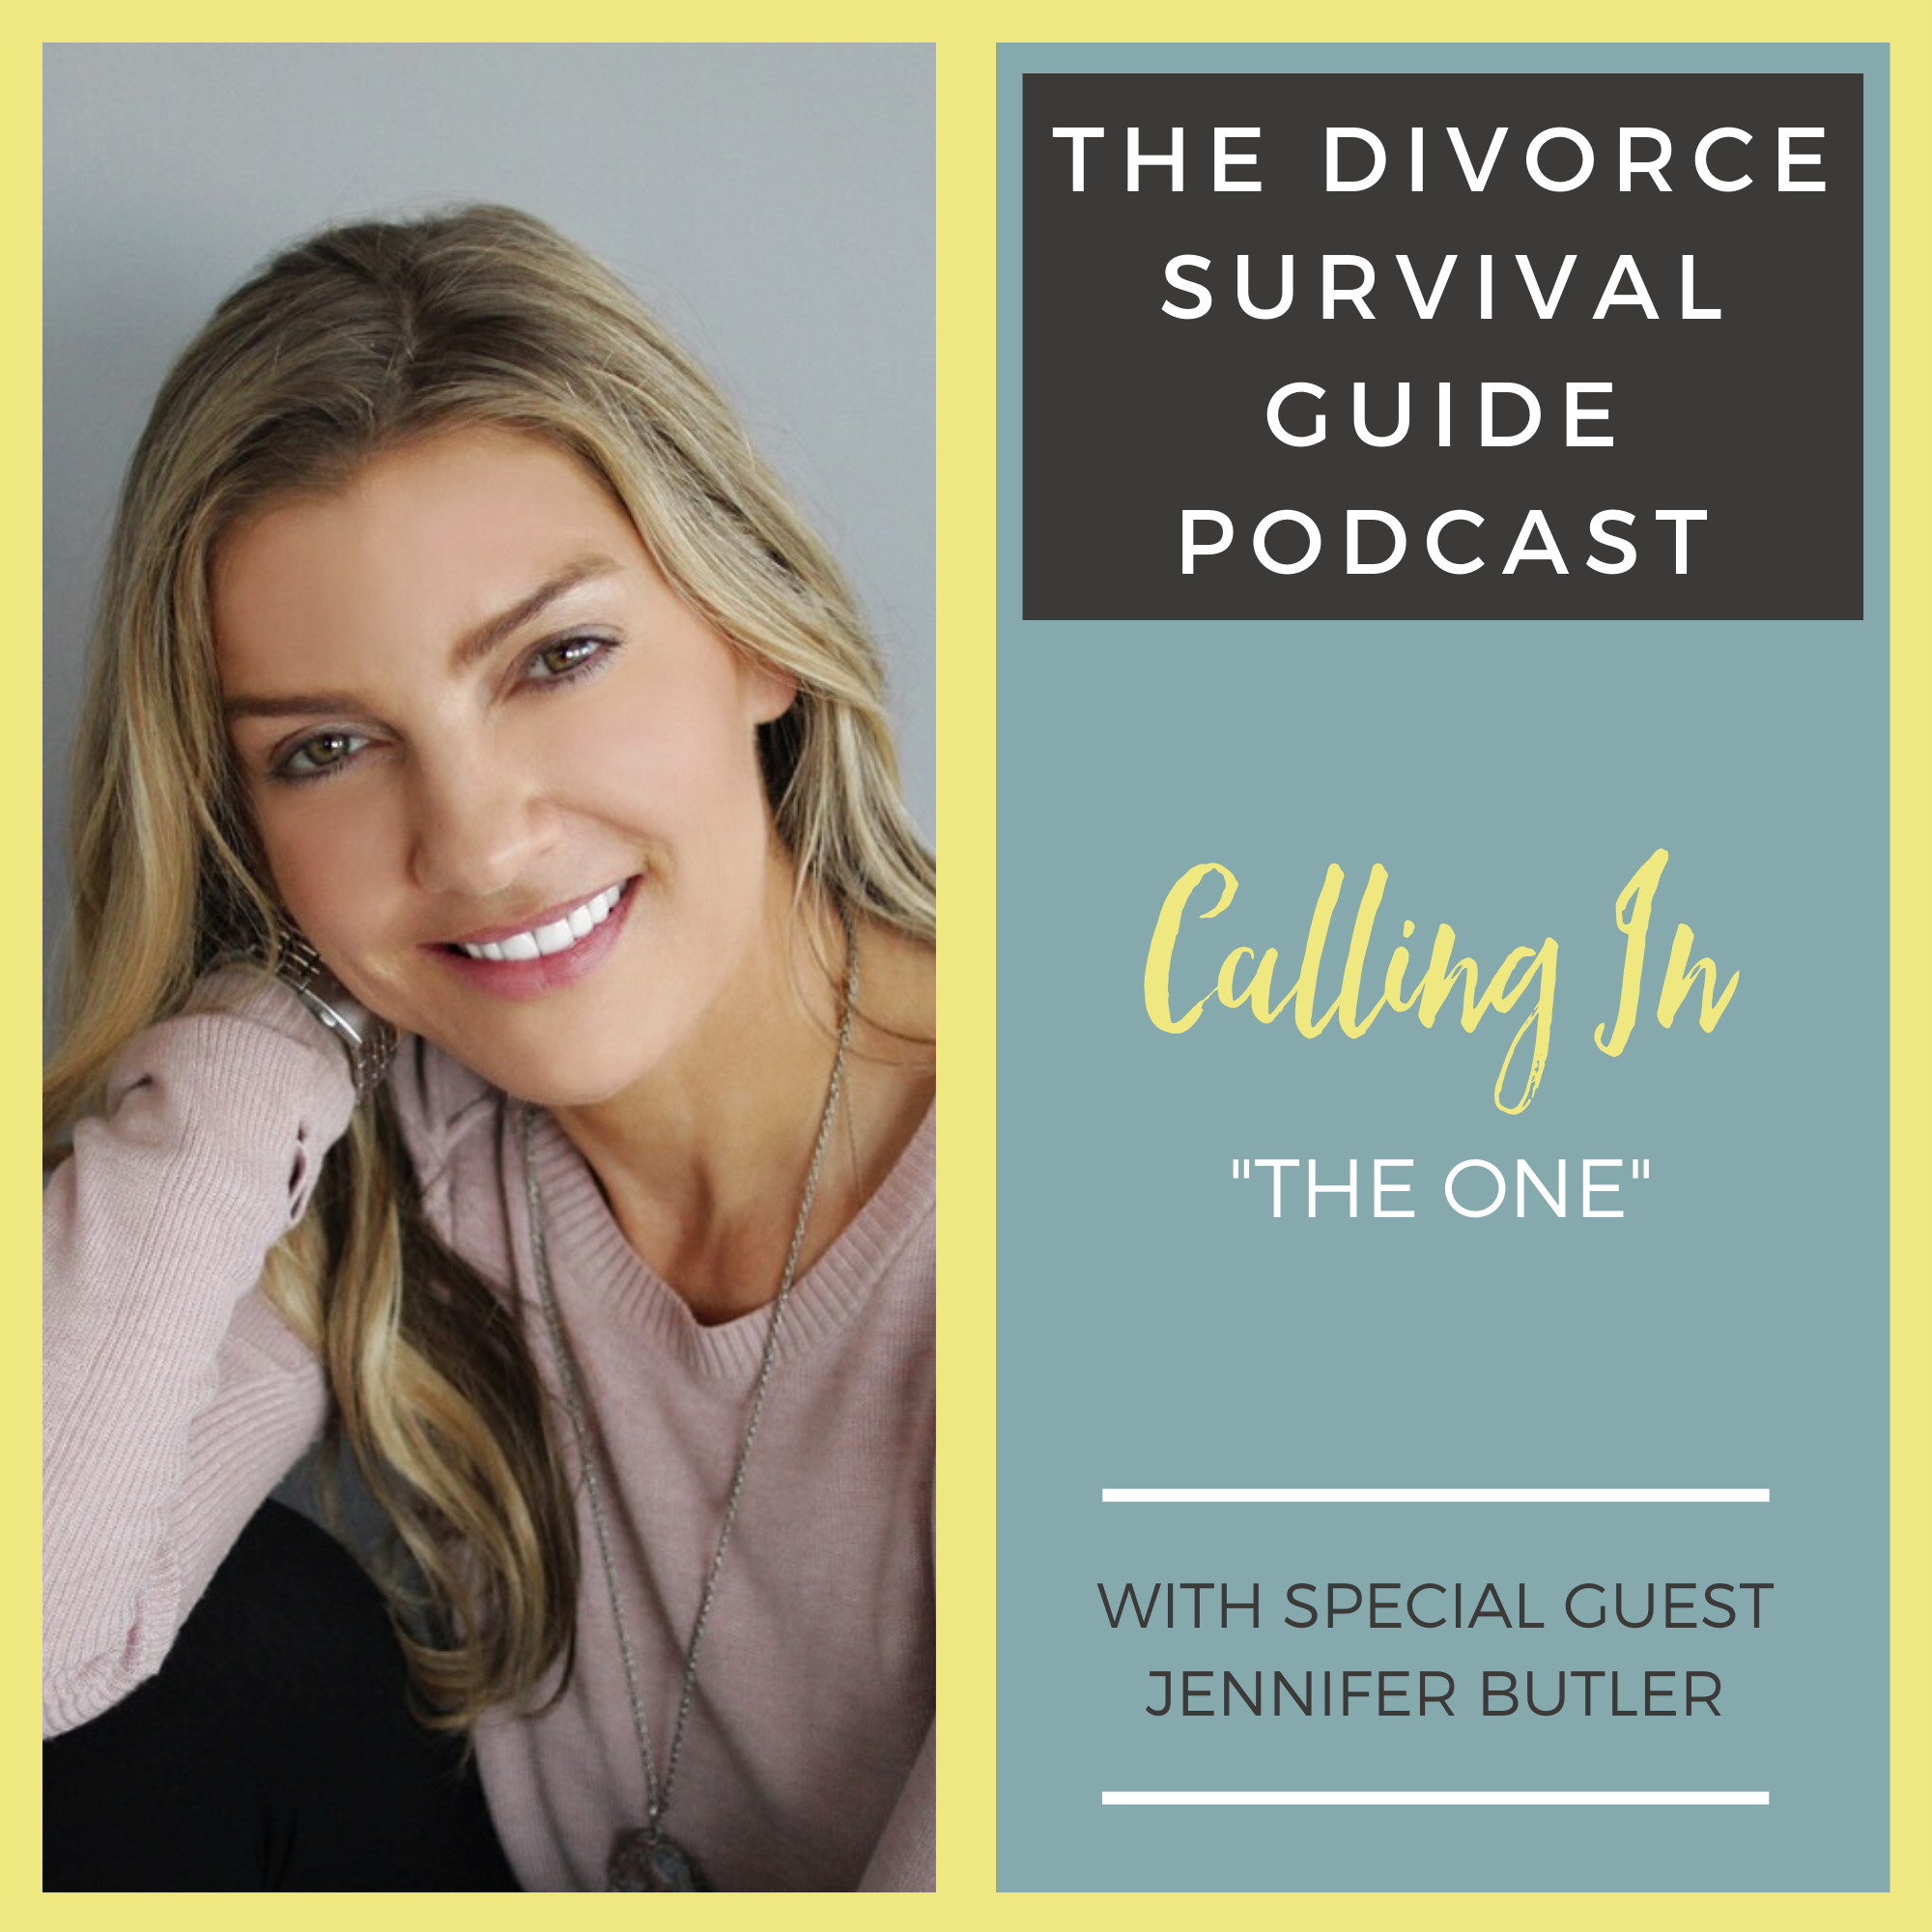 """The Divorce Survival Guide Podcast - Calling In """"The One"""" with Jennifer Butler"""